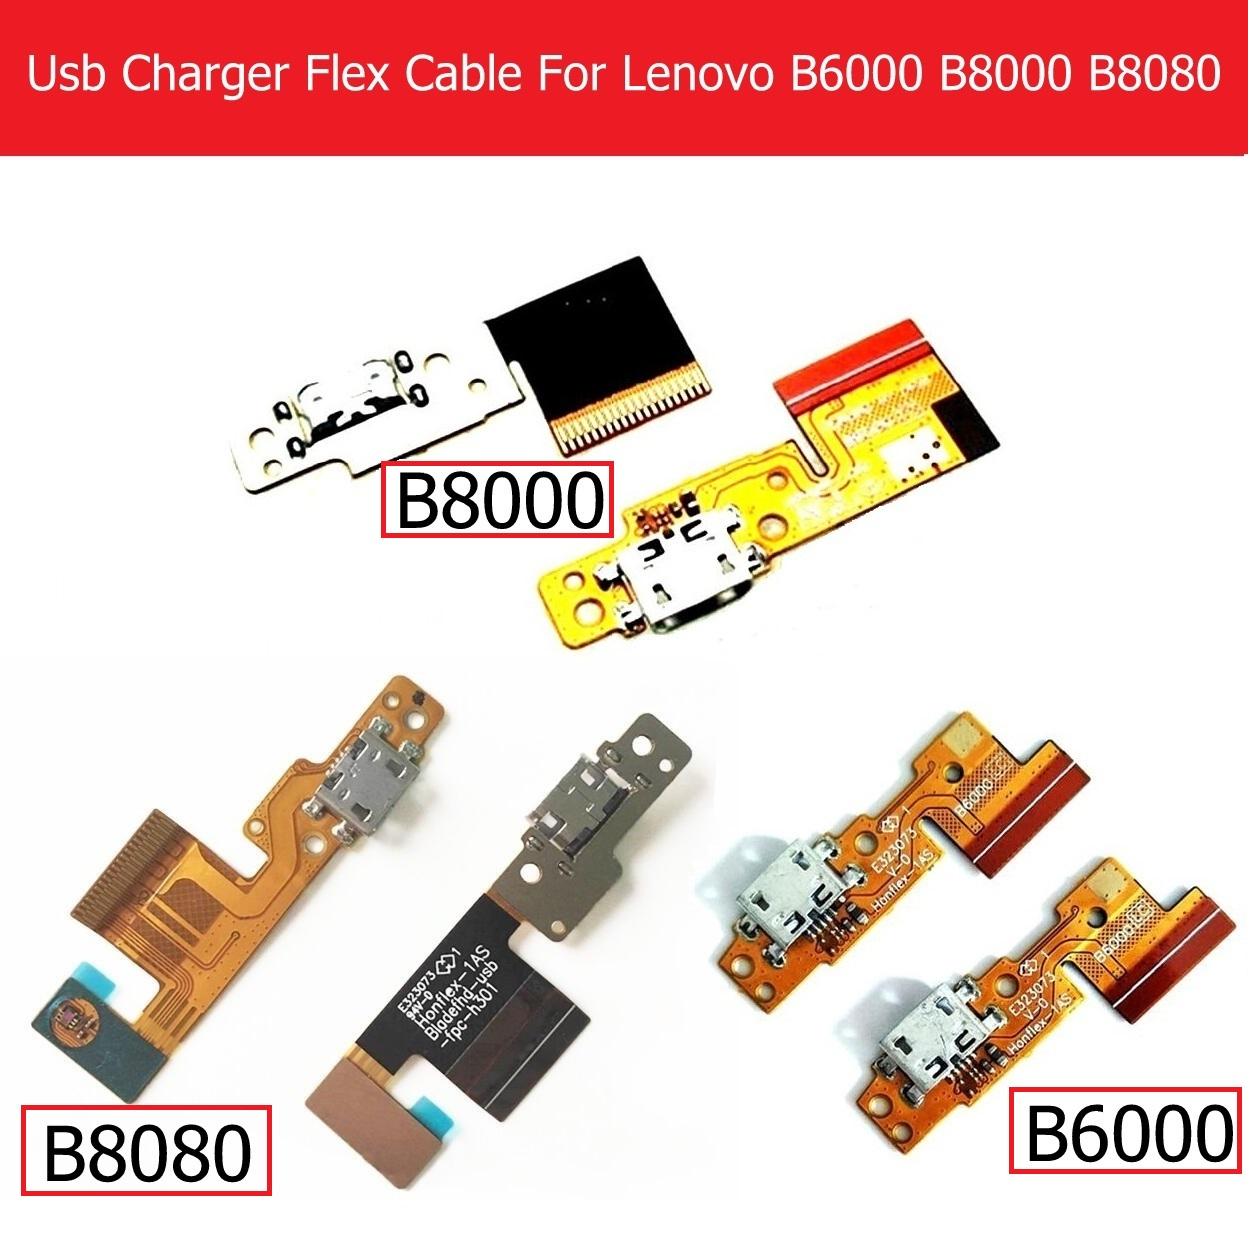 Genuine USB Charger Connector Flex Cable For Lenovo Pad <font><b>B8000</b></font> B8080 10.1